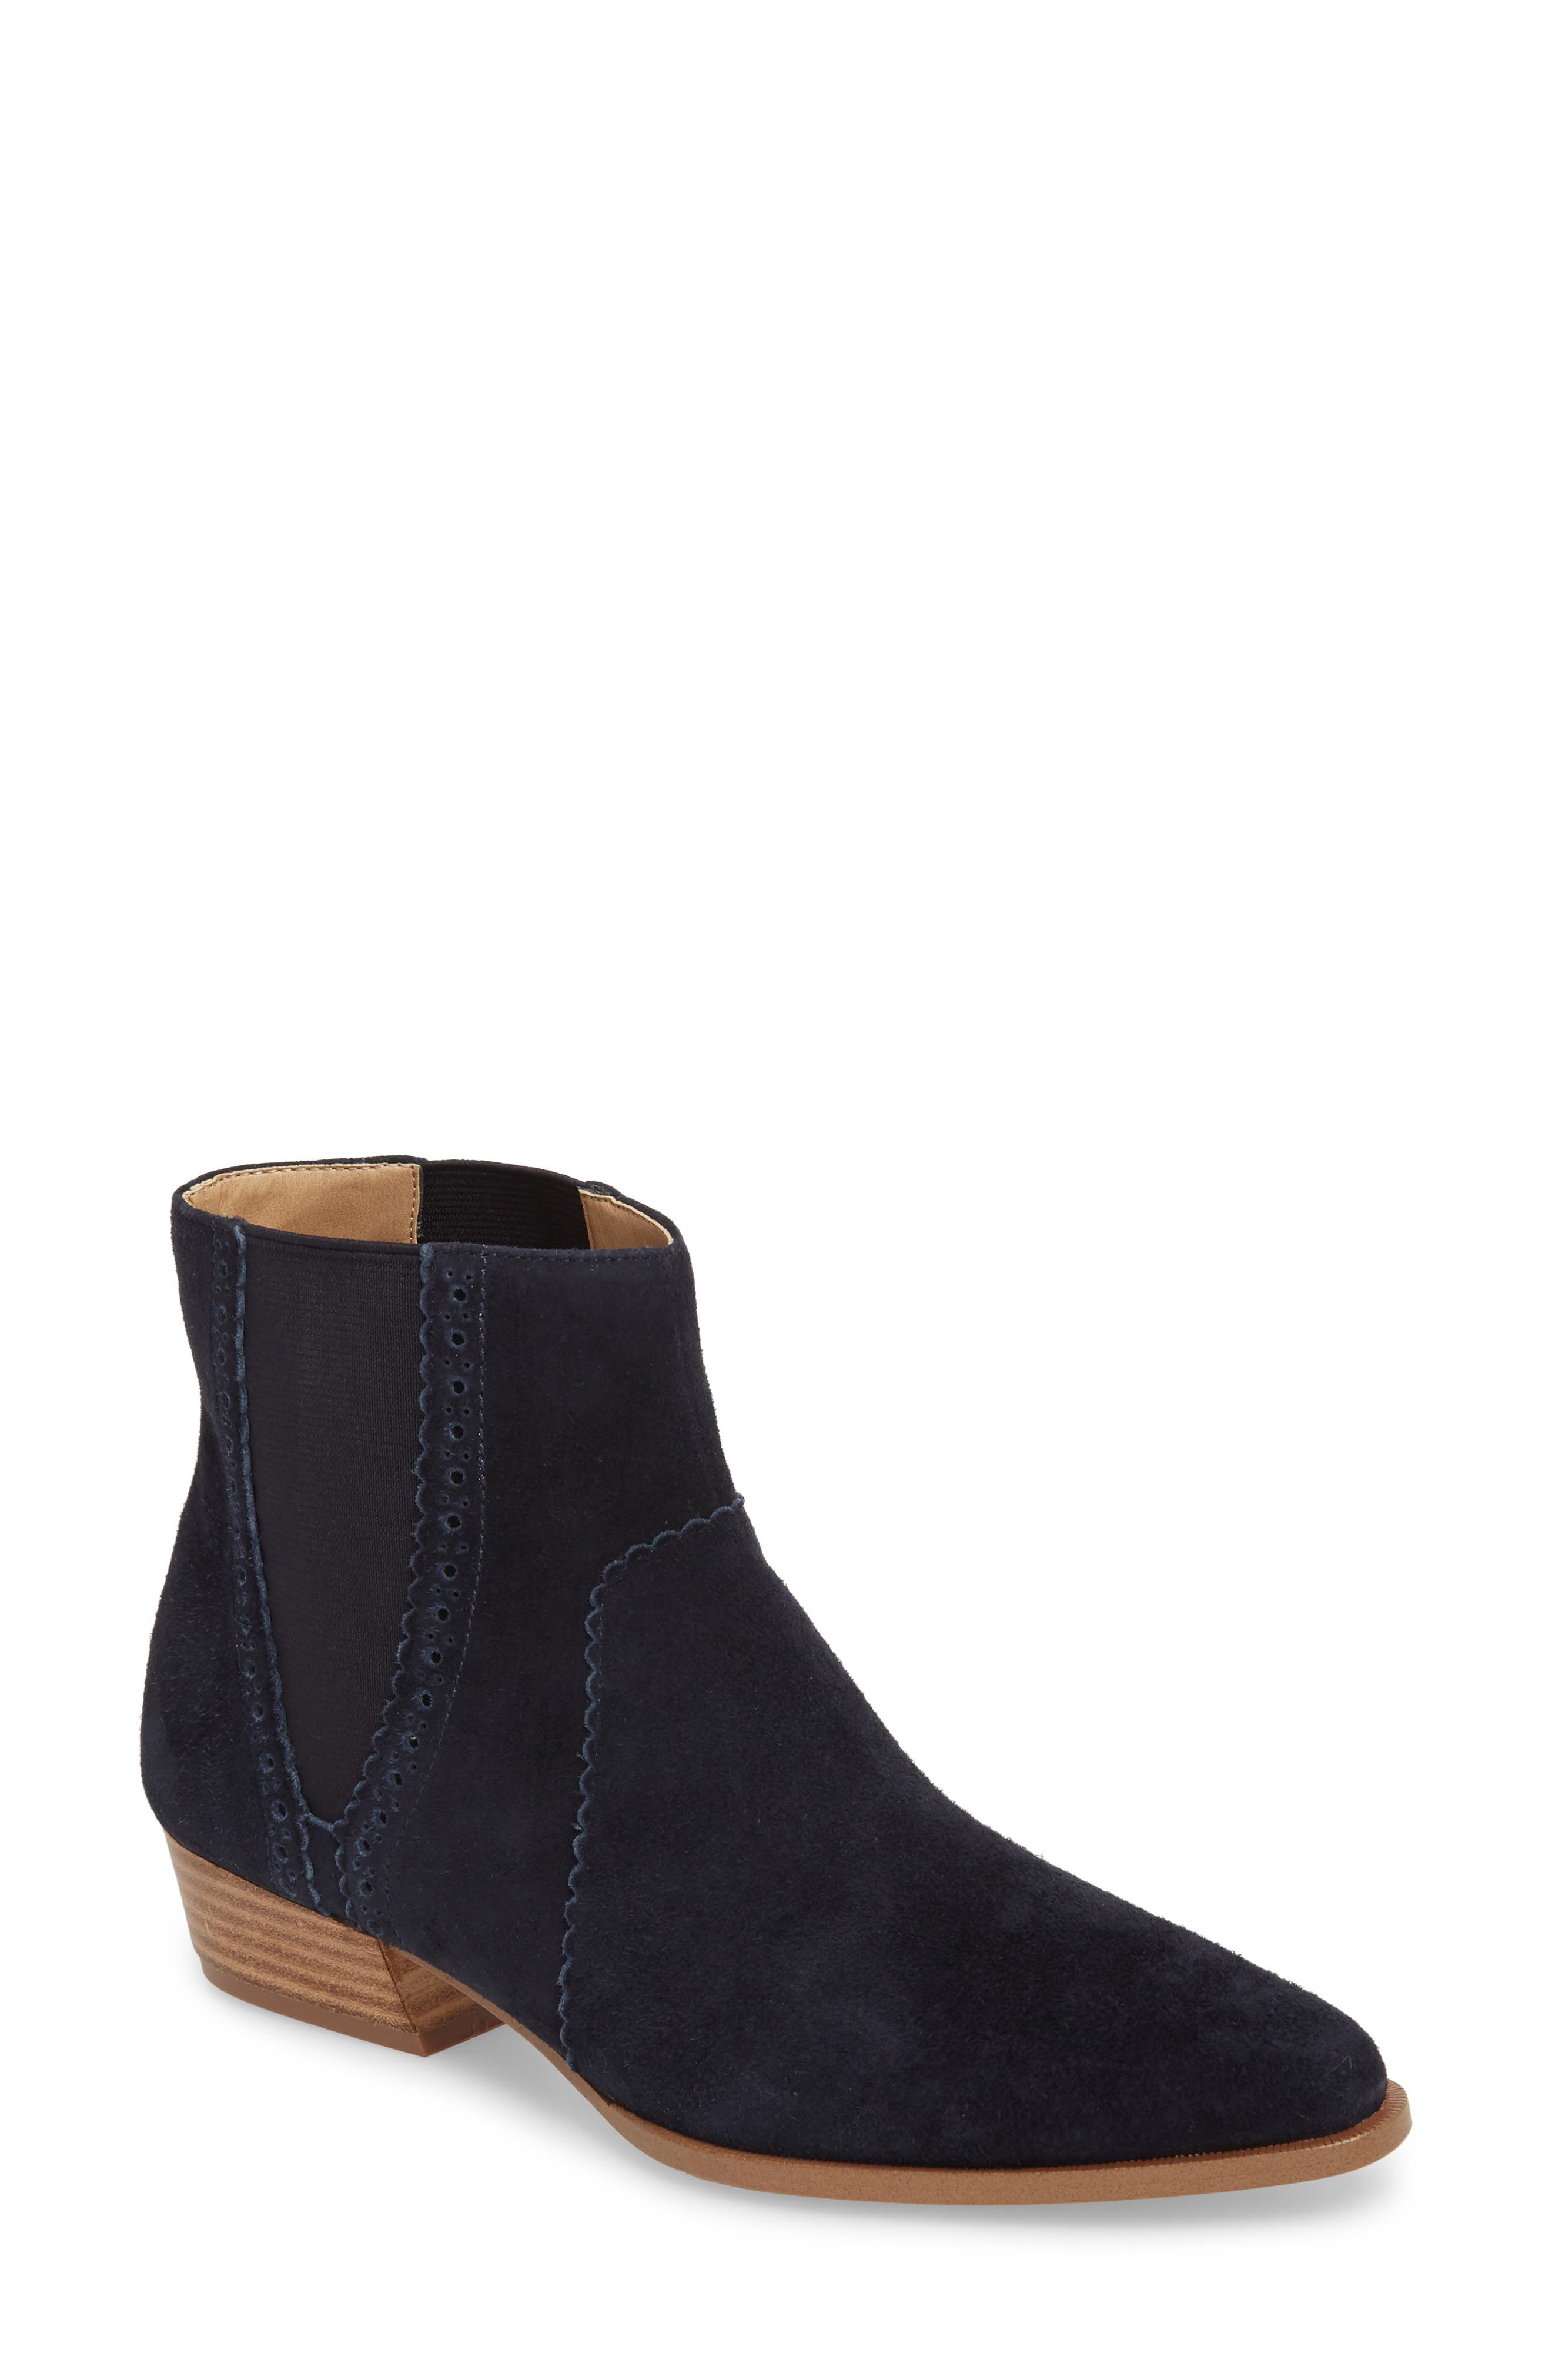 Mica Chelsea Bootie,                         Main,                         color, SPACE CADET SUEDE